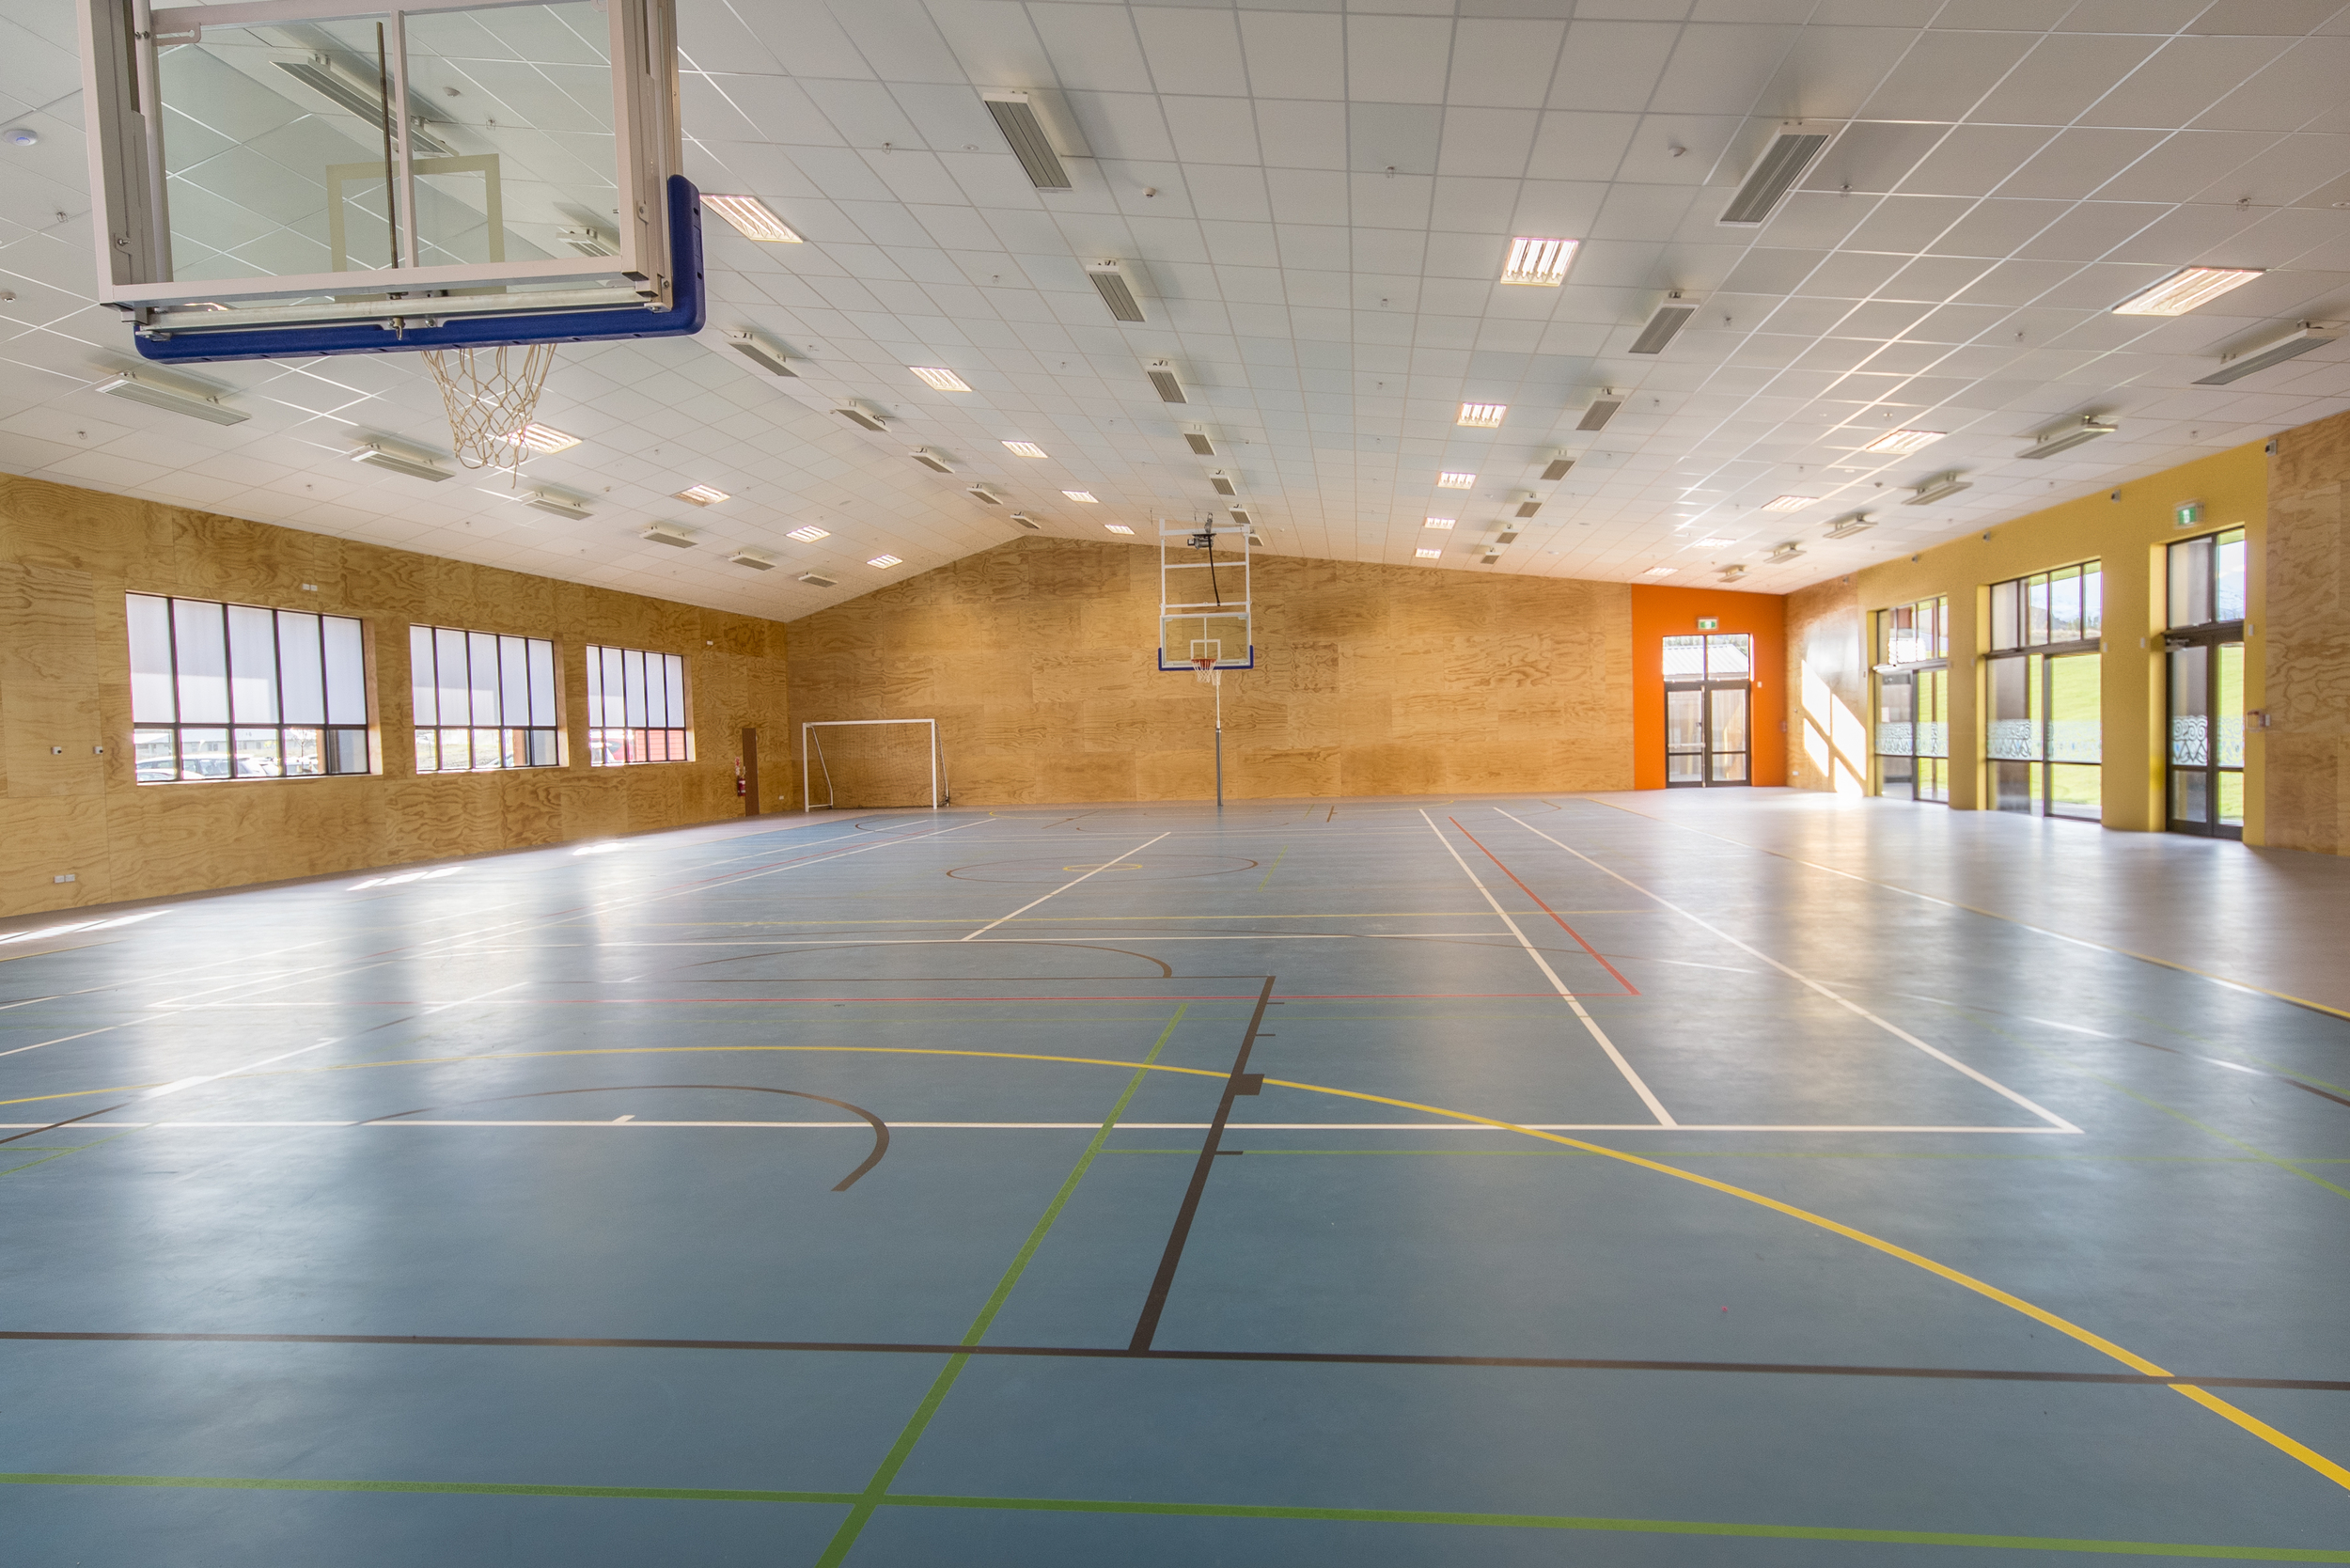 Shotover School Hall Interiors-13.jpg